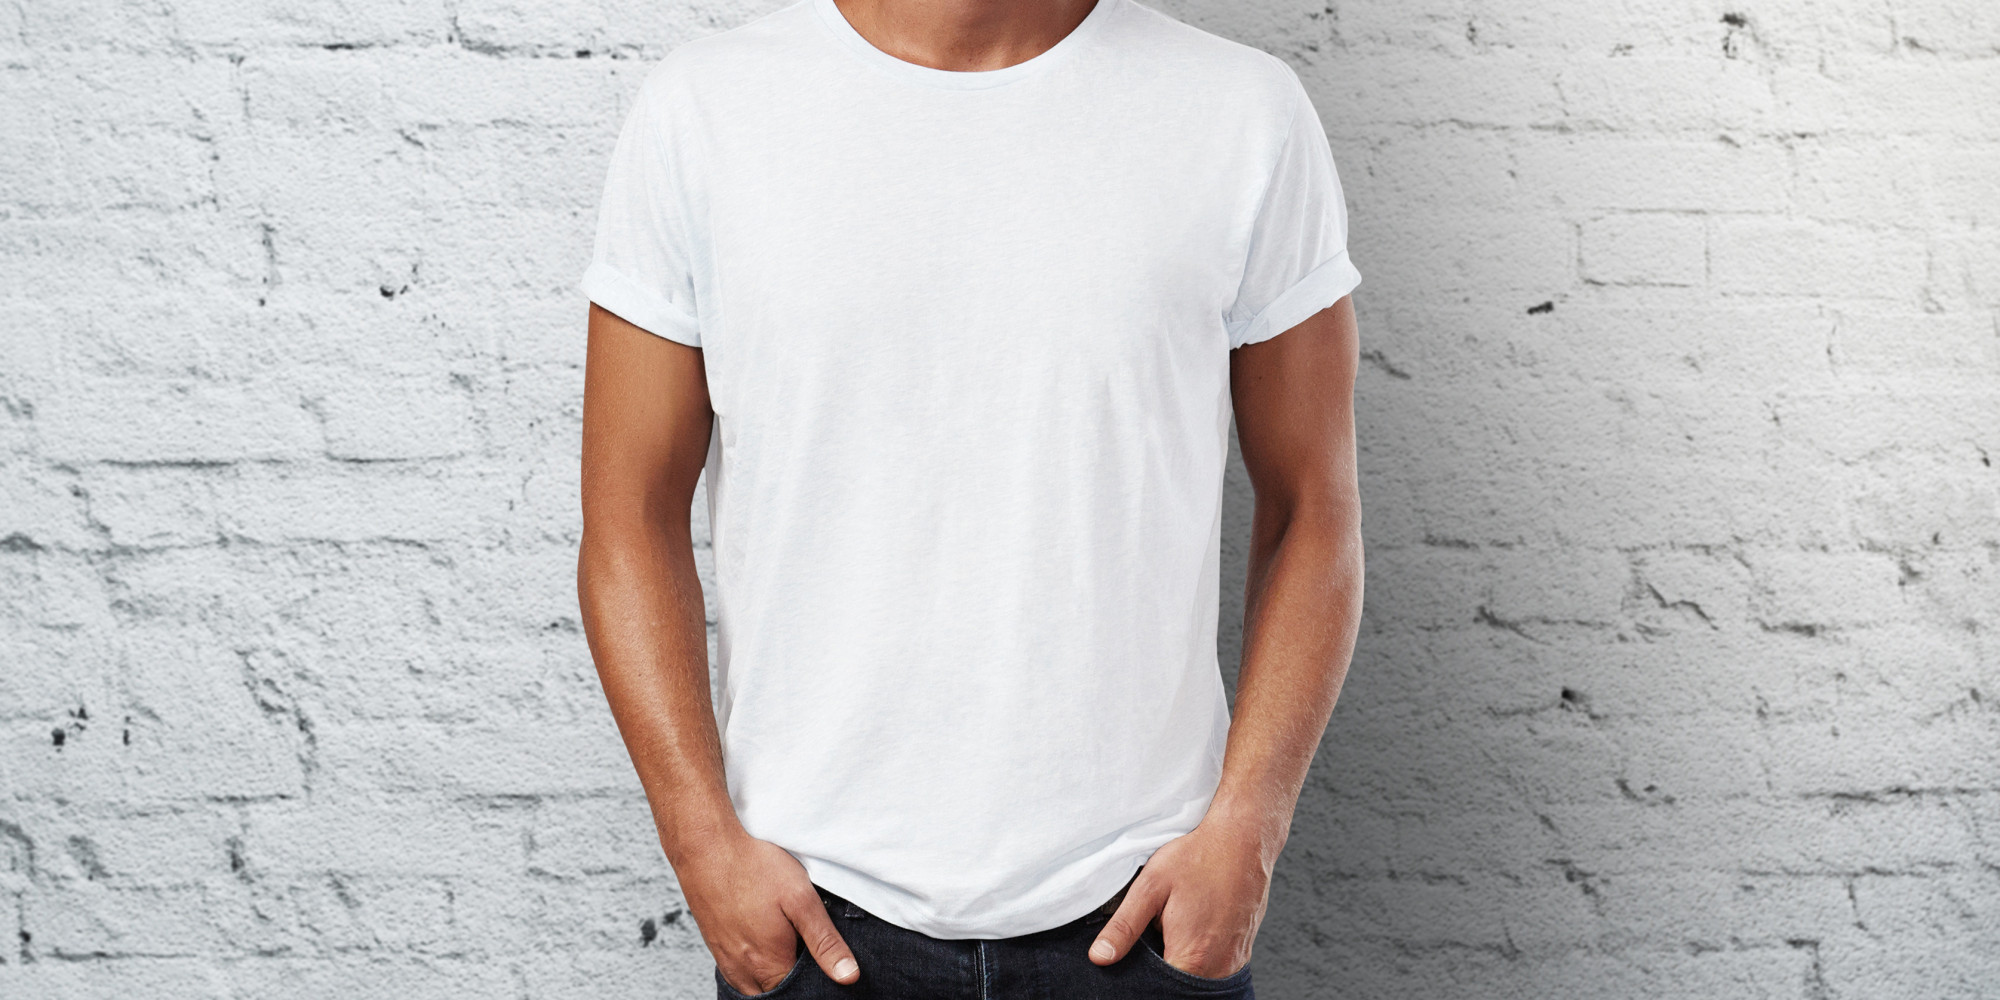 How To Get Rid Of Sweat Stains On White TShirts  HuffPost UK